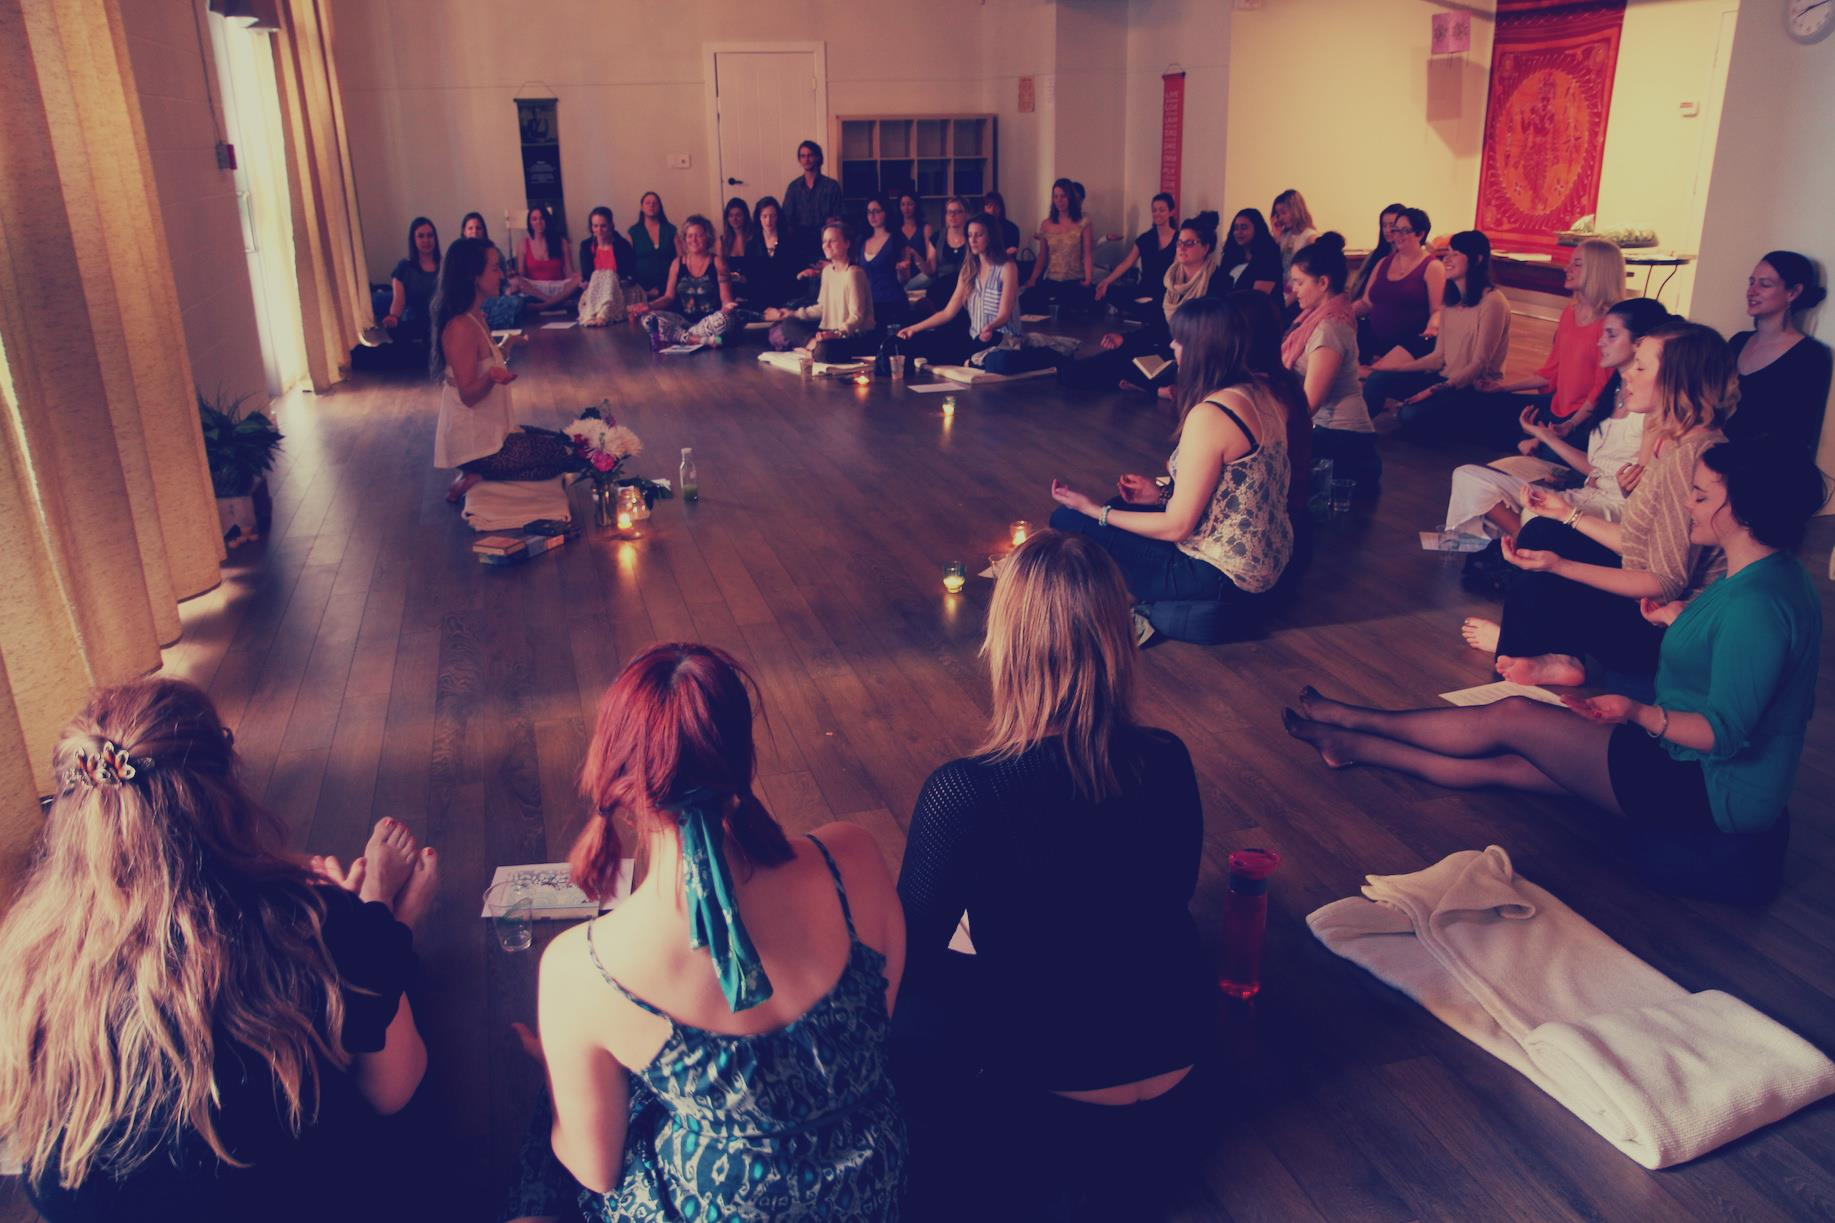 Guiding a workshop on How to Communicate With Your Spirit Guides + Angels in Calgary, AB.